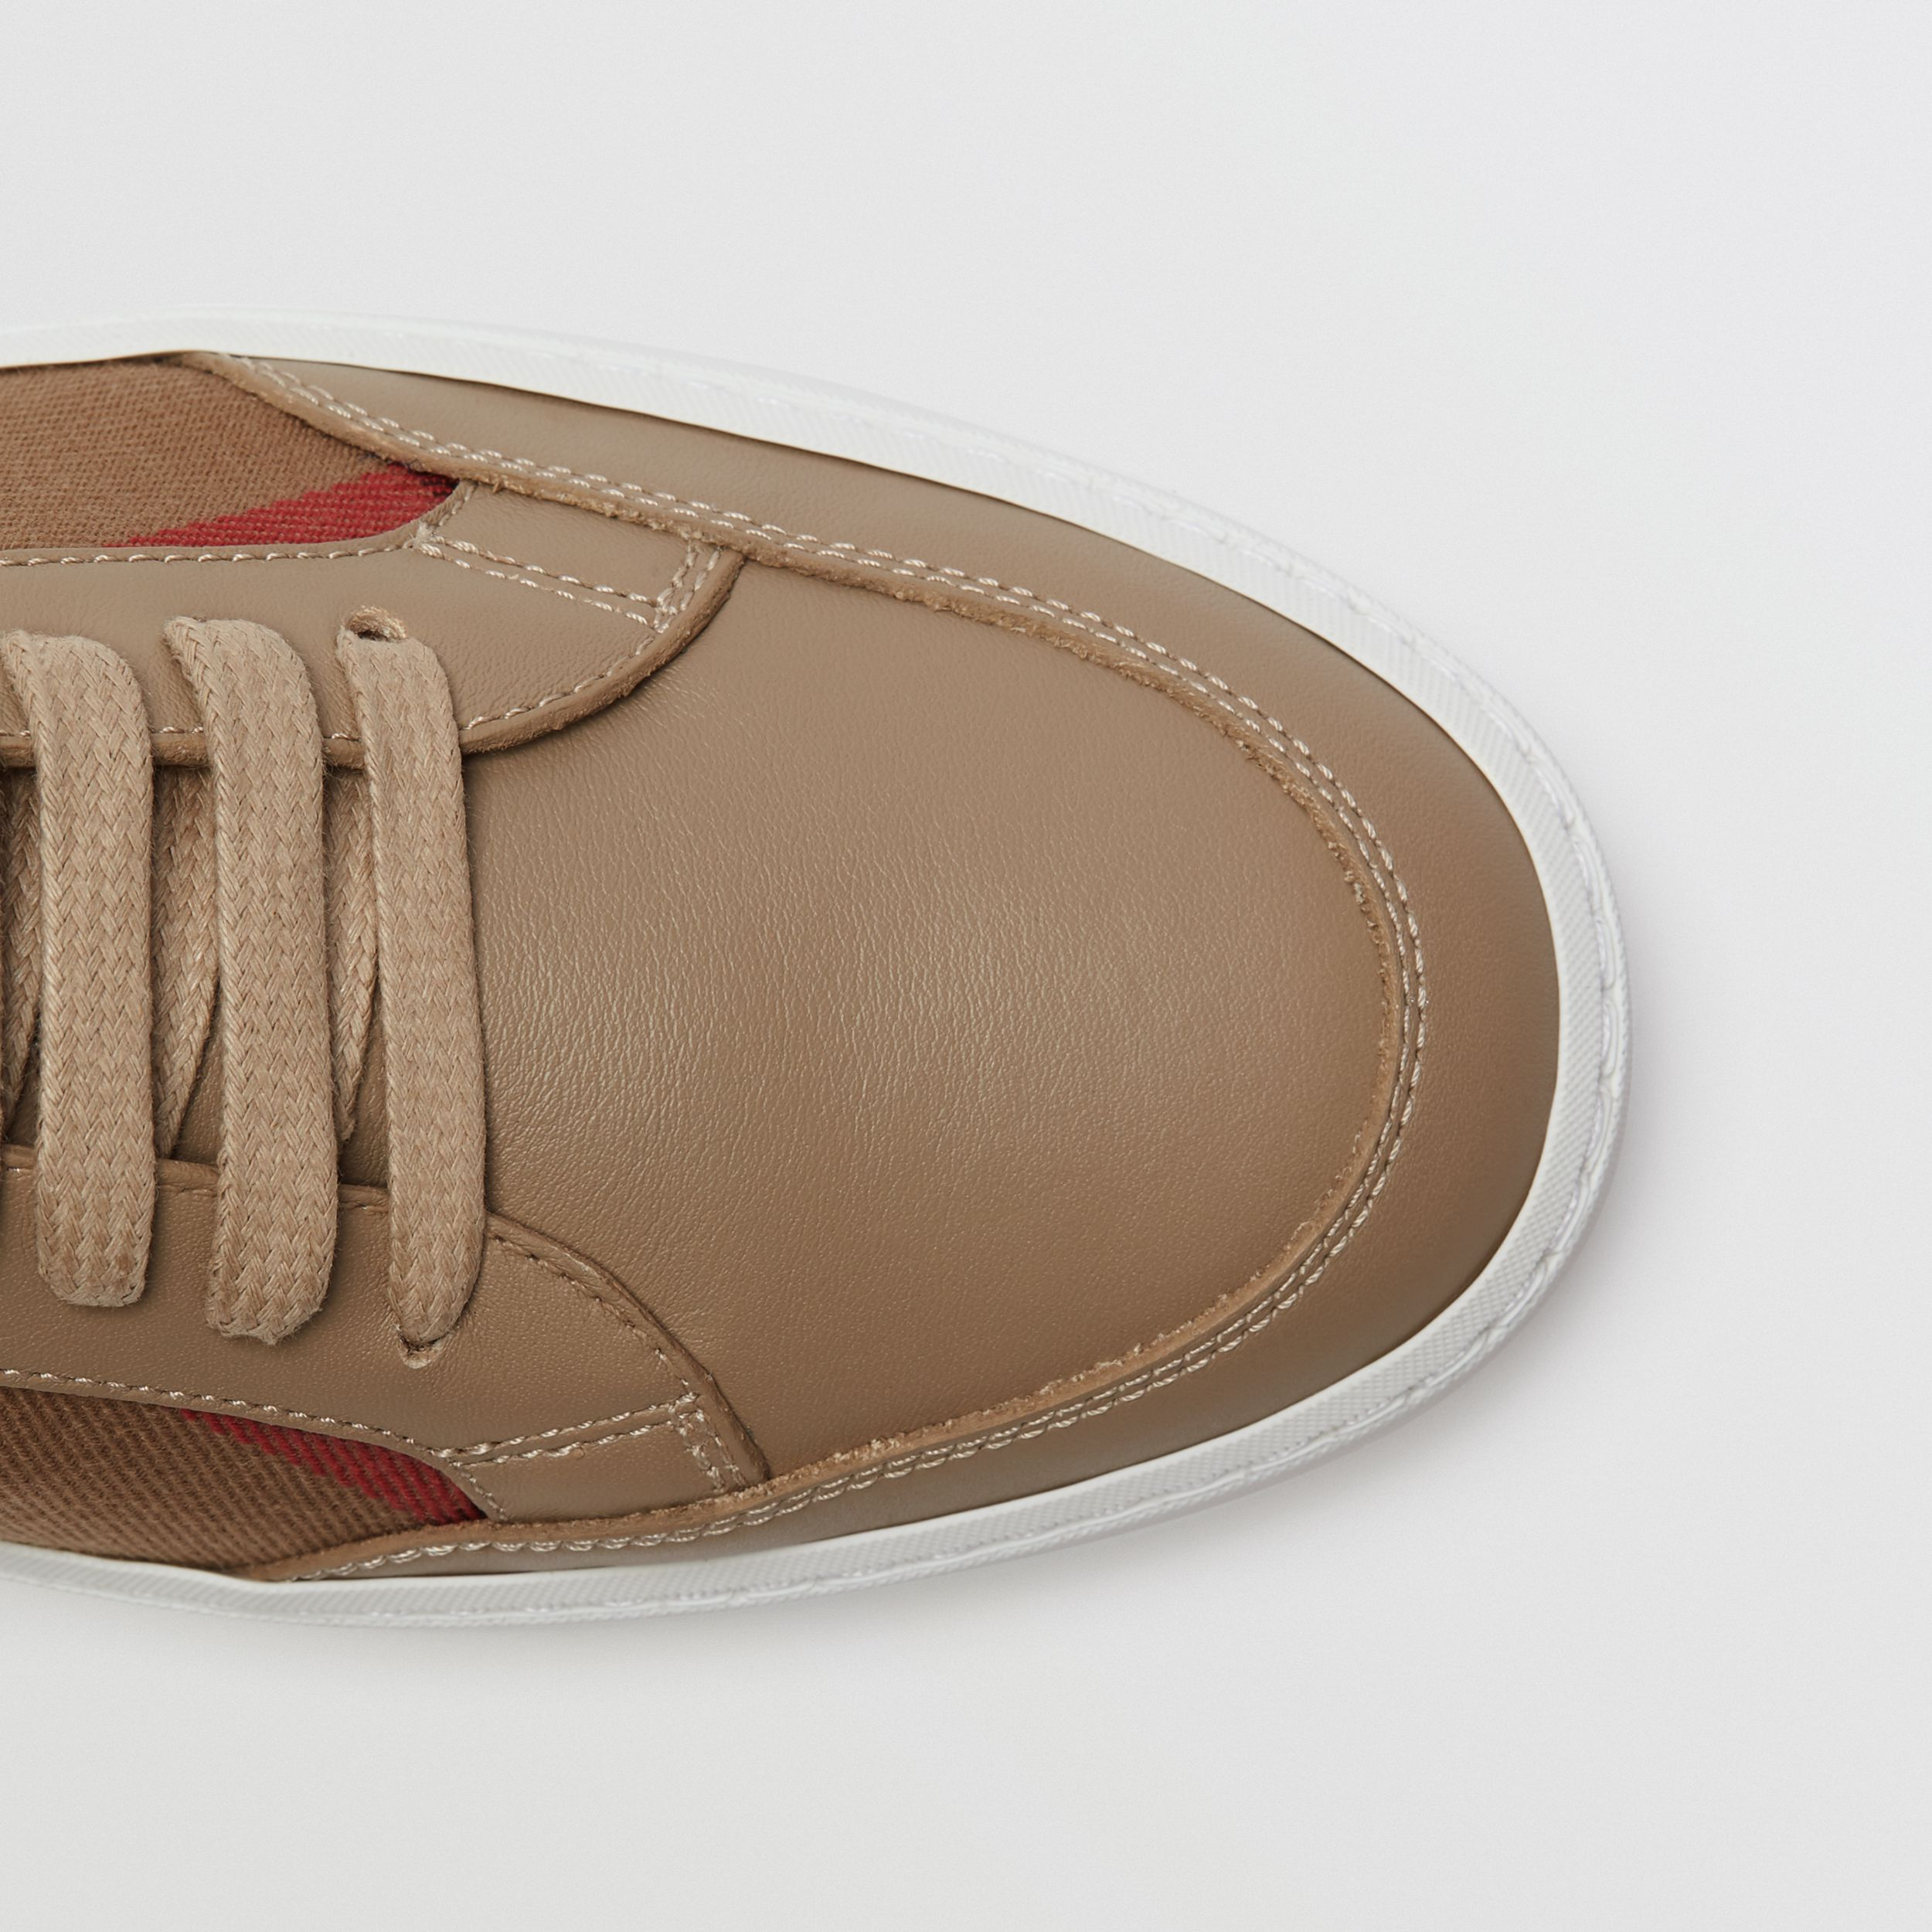 Check Detail Leather Sneakers in House Check/ Nude - Women | Burberry United Kingdom - 2